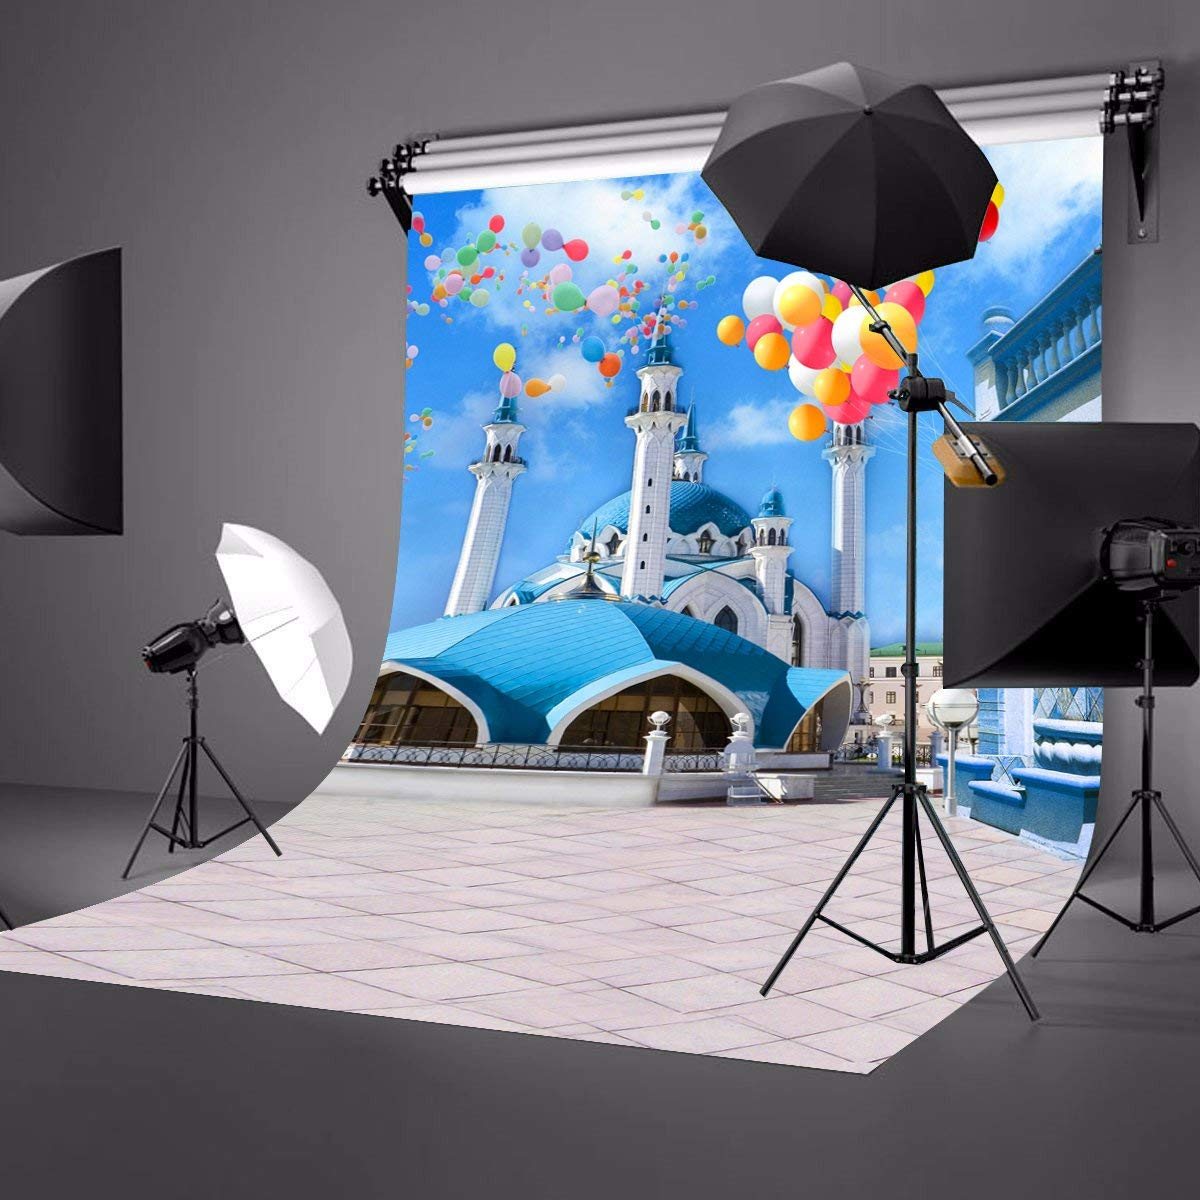 5x7ft Mediterranean Style Architecture Backdrop Aegean Area Blue Bildings Colorful Flying Balloons Photo Video Props in Photo Studio Accessories from Consumer Electronics